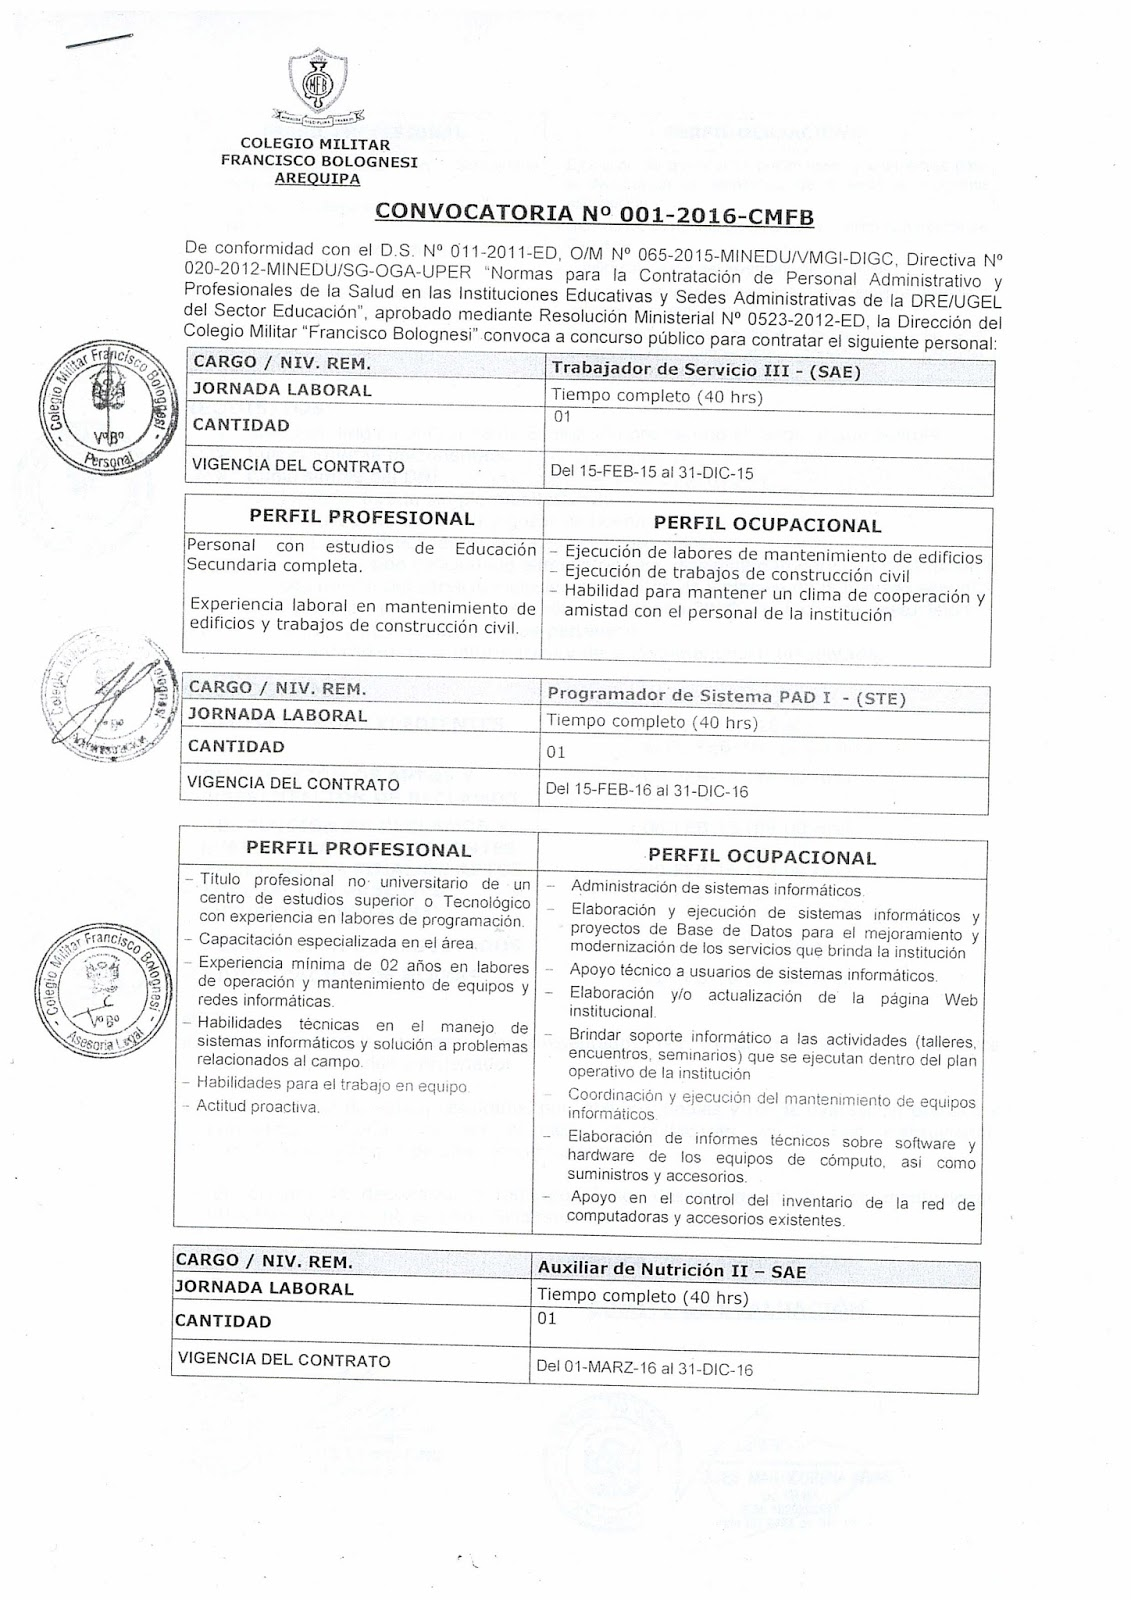 Convocatoria n 001 2016 cmfb noticias m s importantes for Convocatoria de docentes 2016